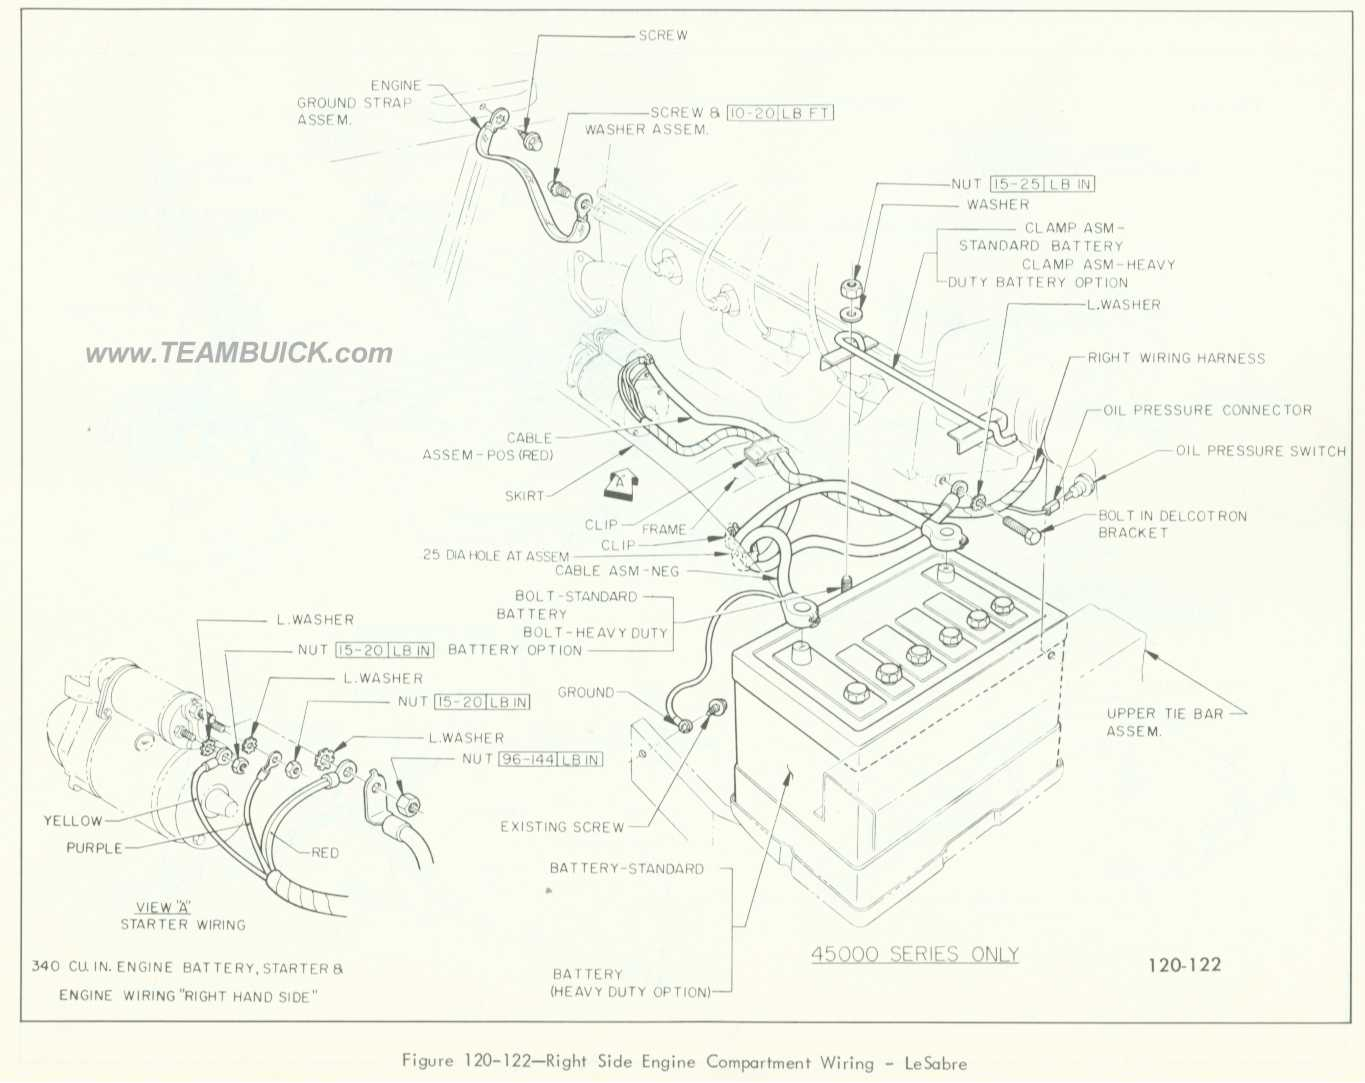 Buick Lesabre Right Side Engine Compartment Wiring